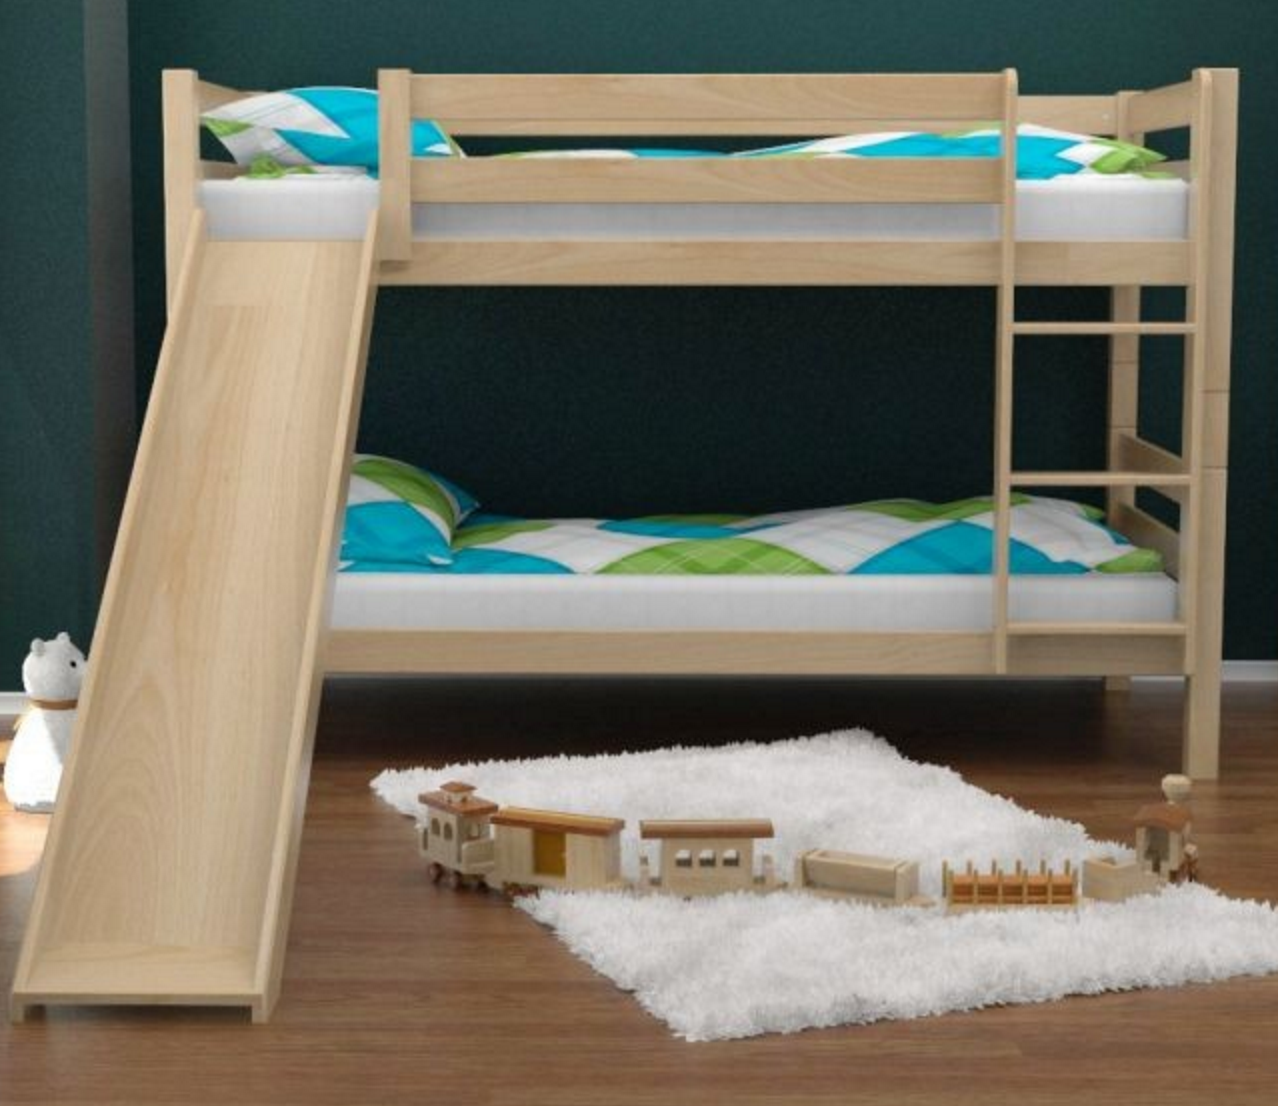 Tall loft bed with slide  Aiden Natural Bunk Bed with Slide  Dilly bedroom  Pinterest  Bunk